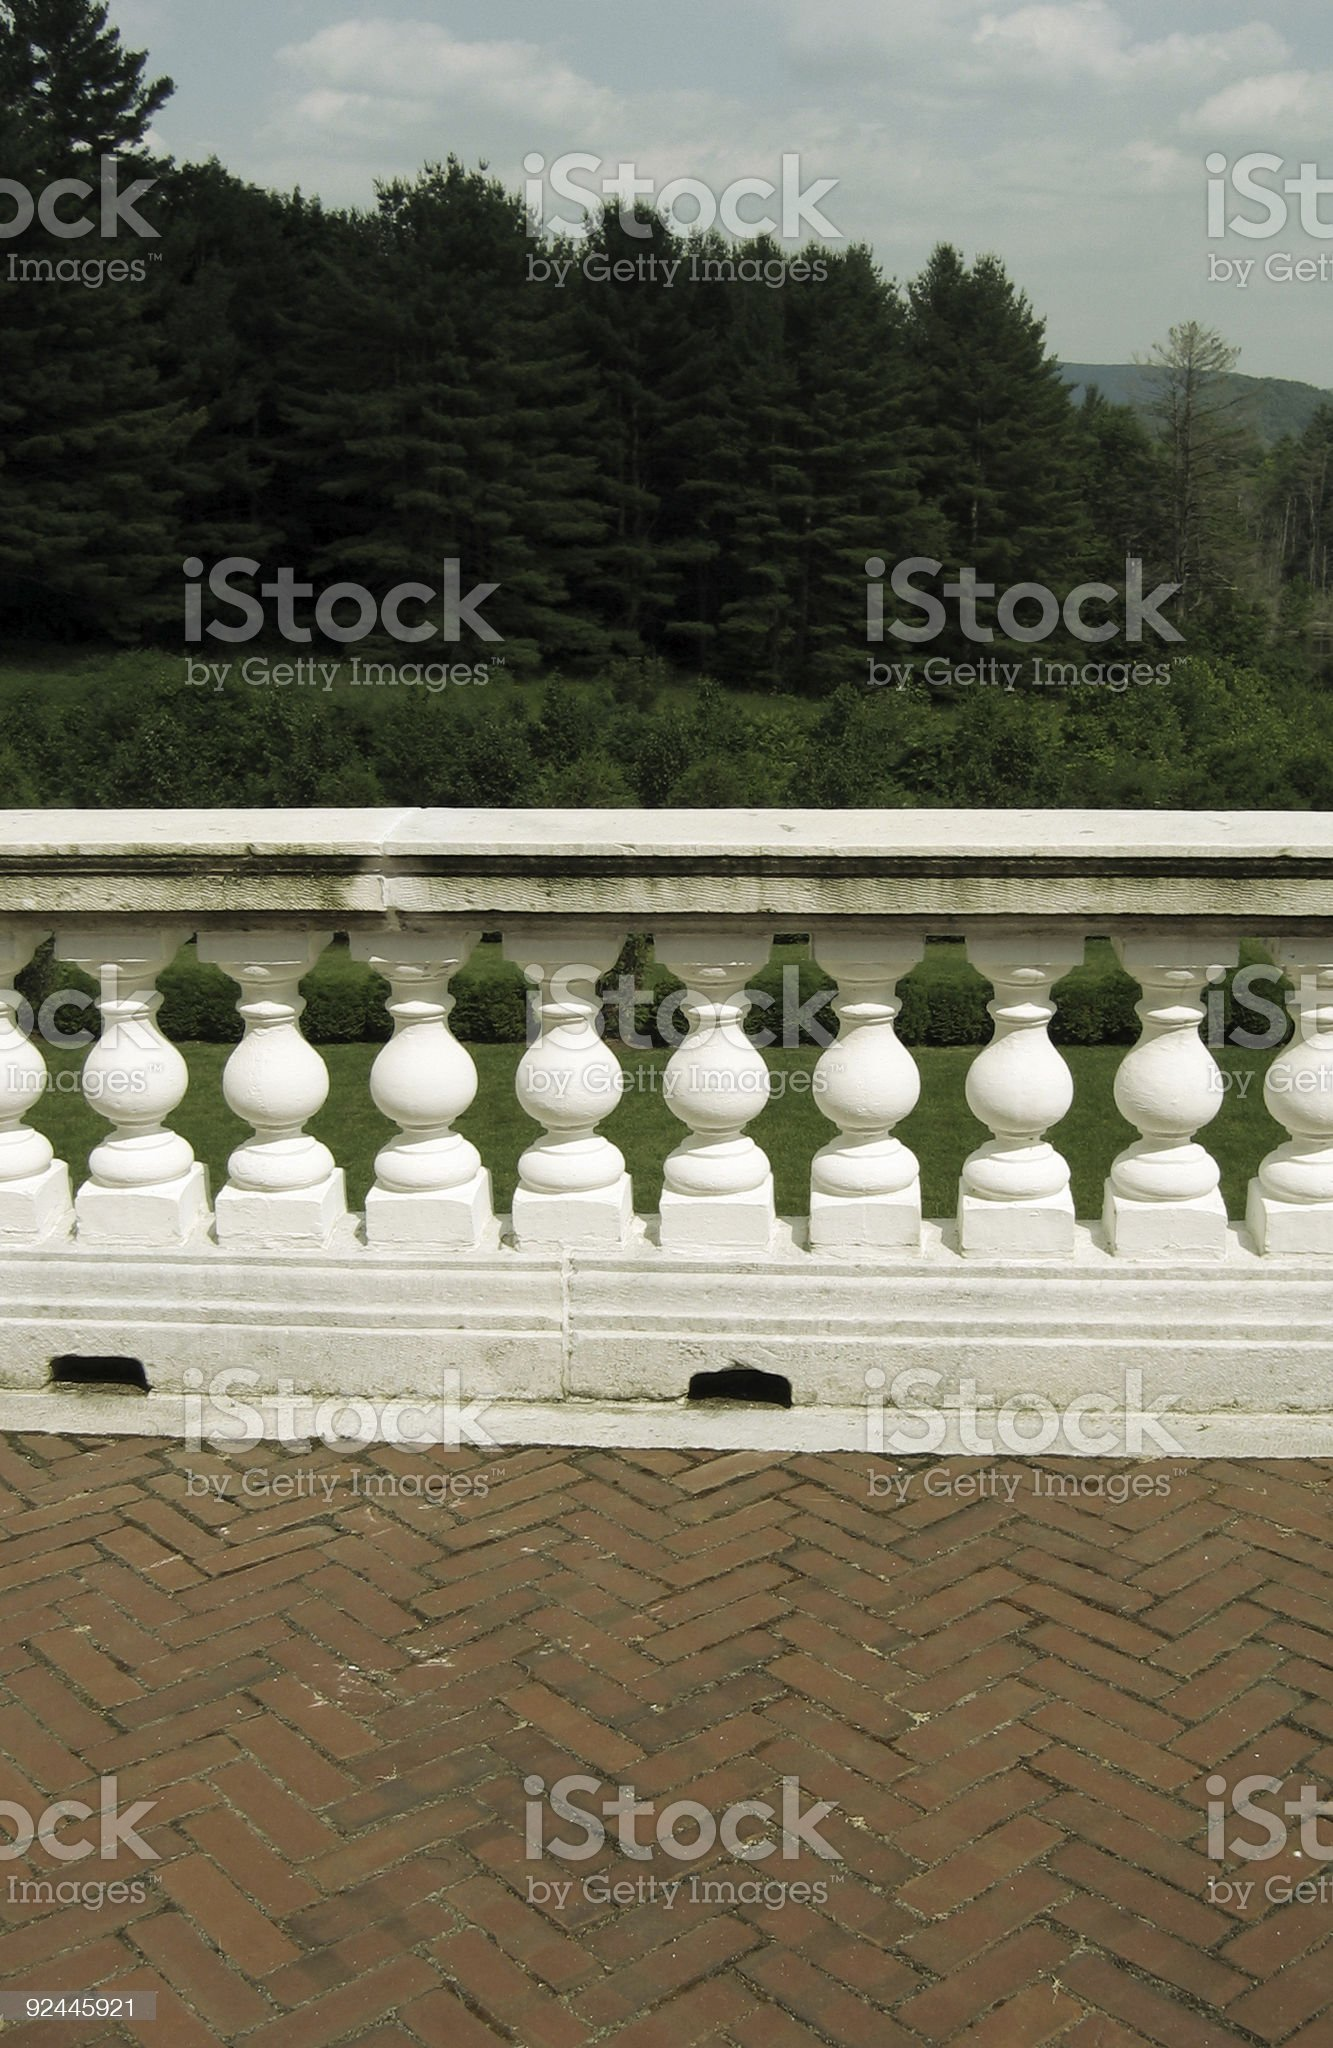 Ornate Stone Railing royalty-free stock photo